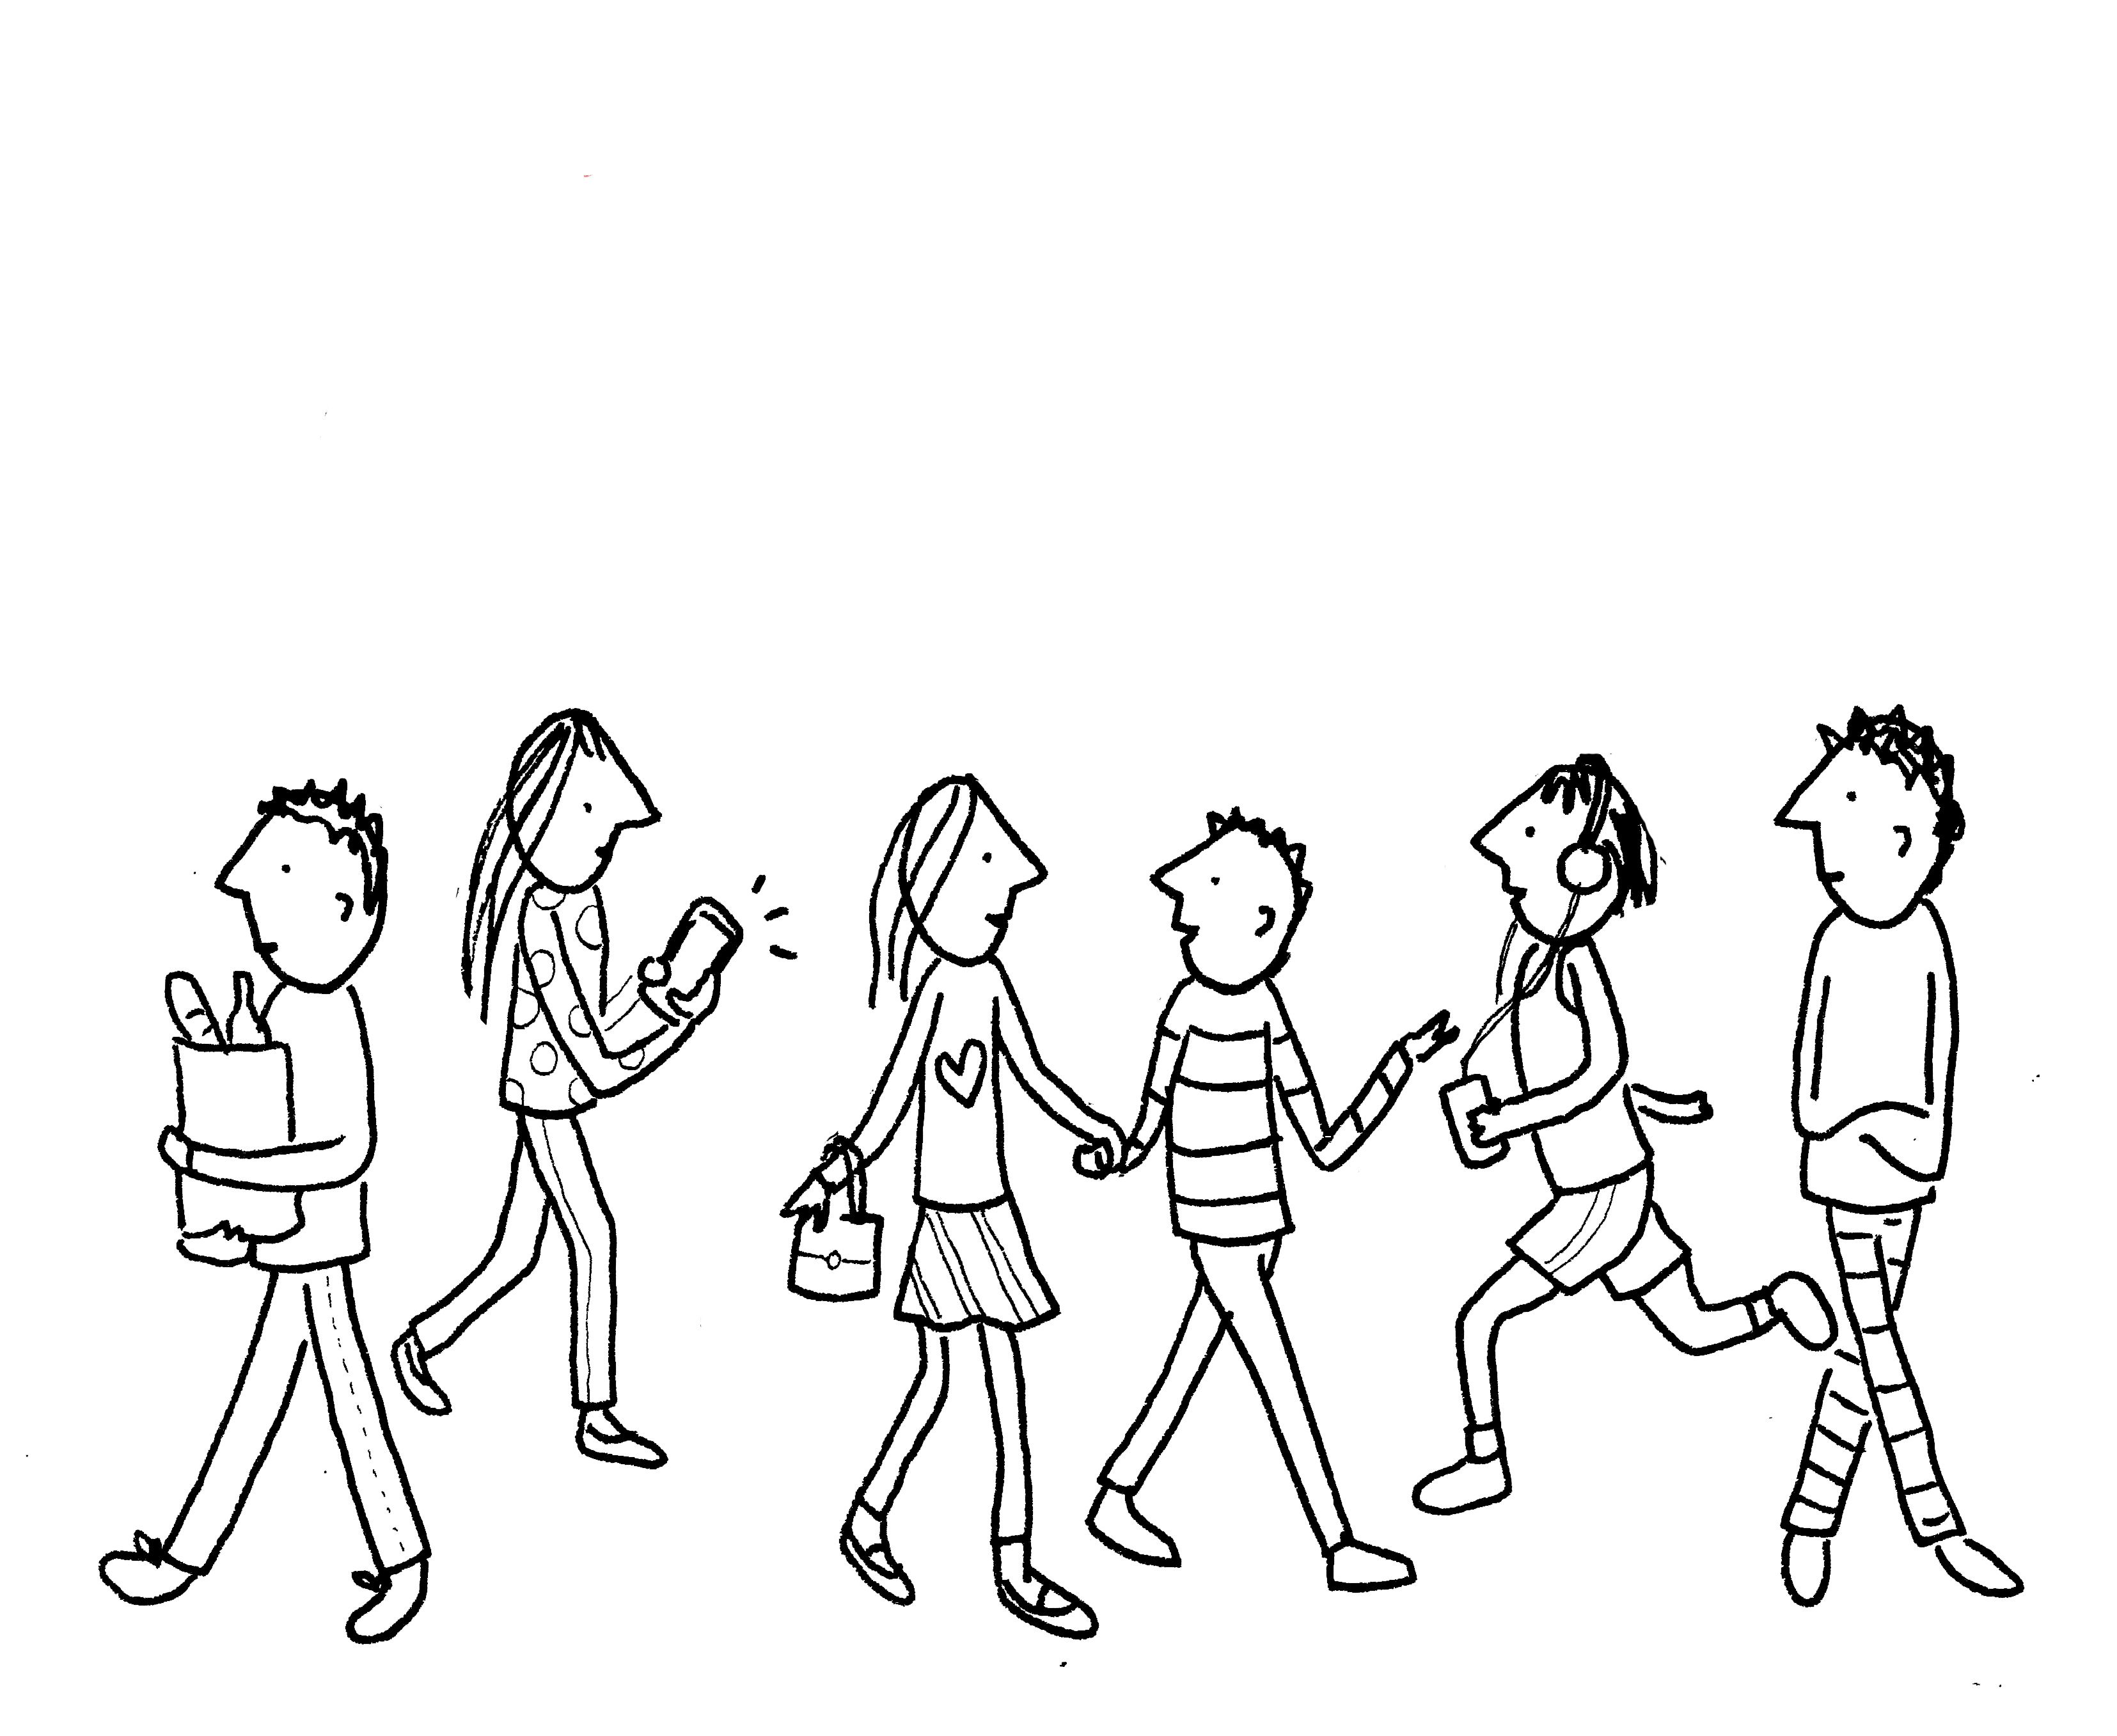 How To Draw A Crowd Of People In 3 Steps